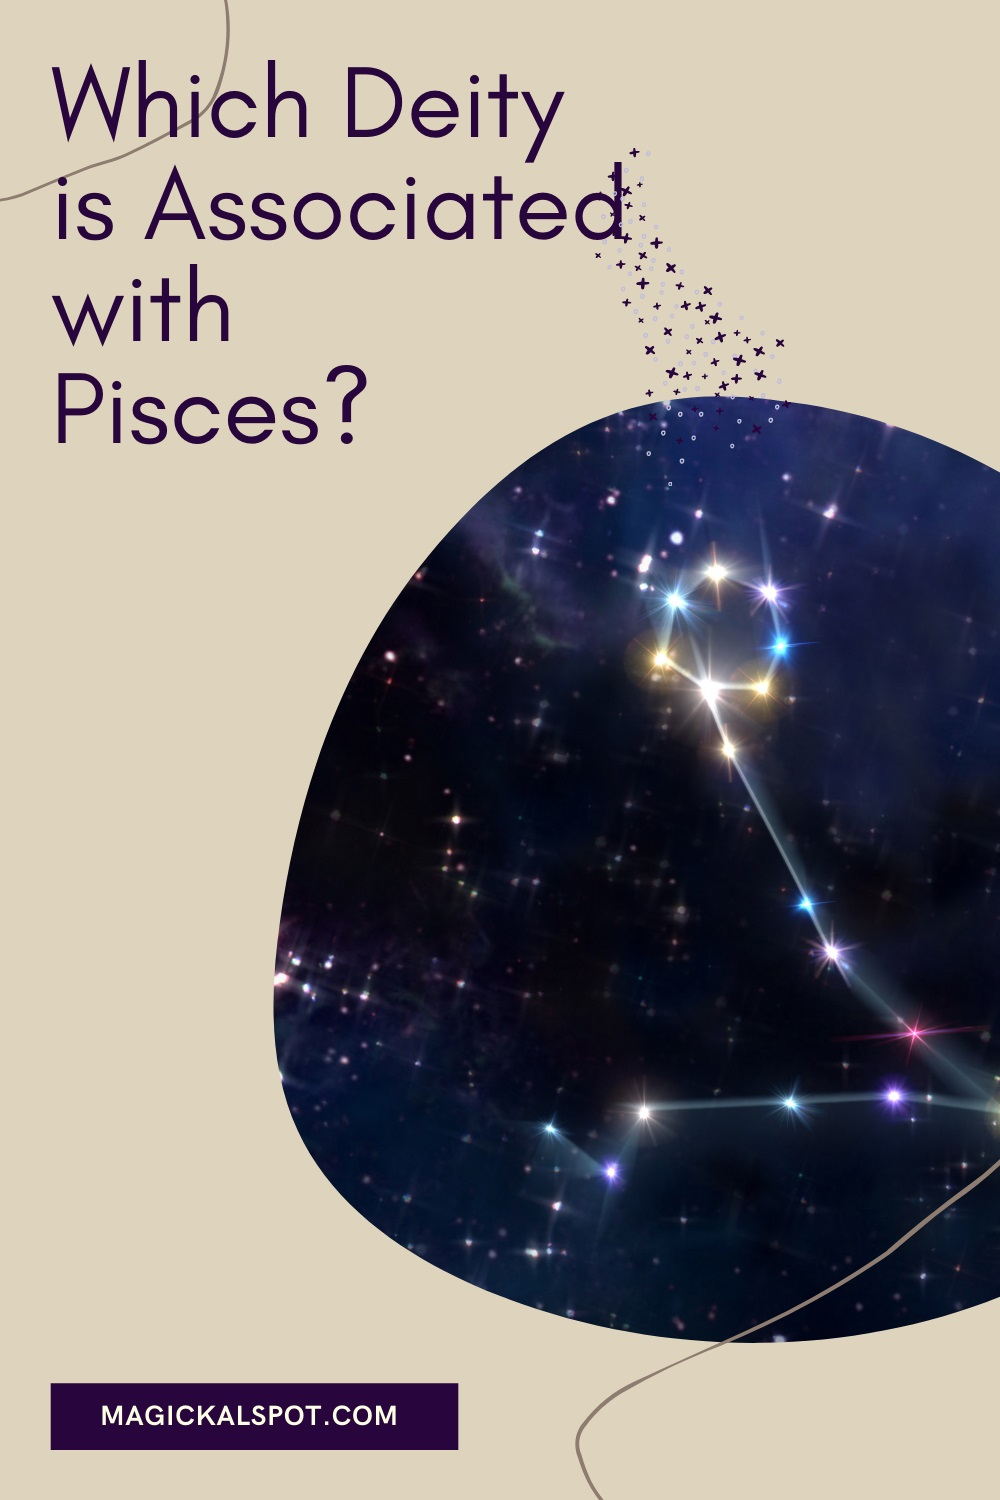 Which Deity is Associated with Pisces by Magickal Spot